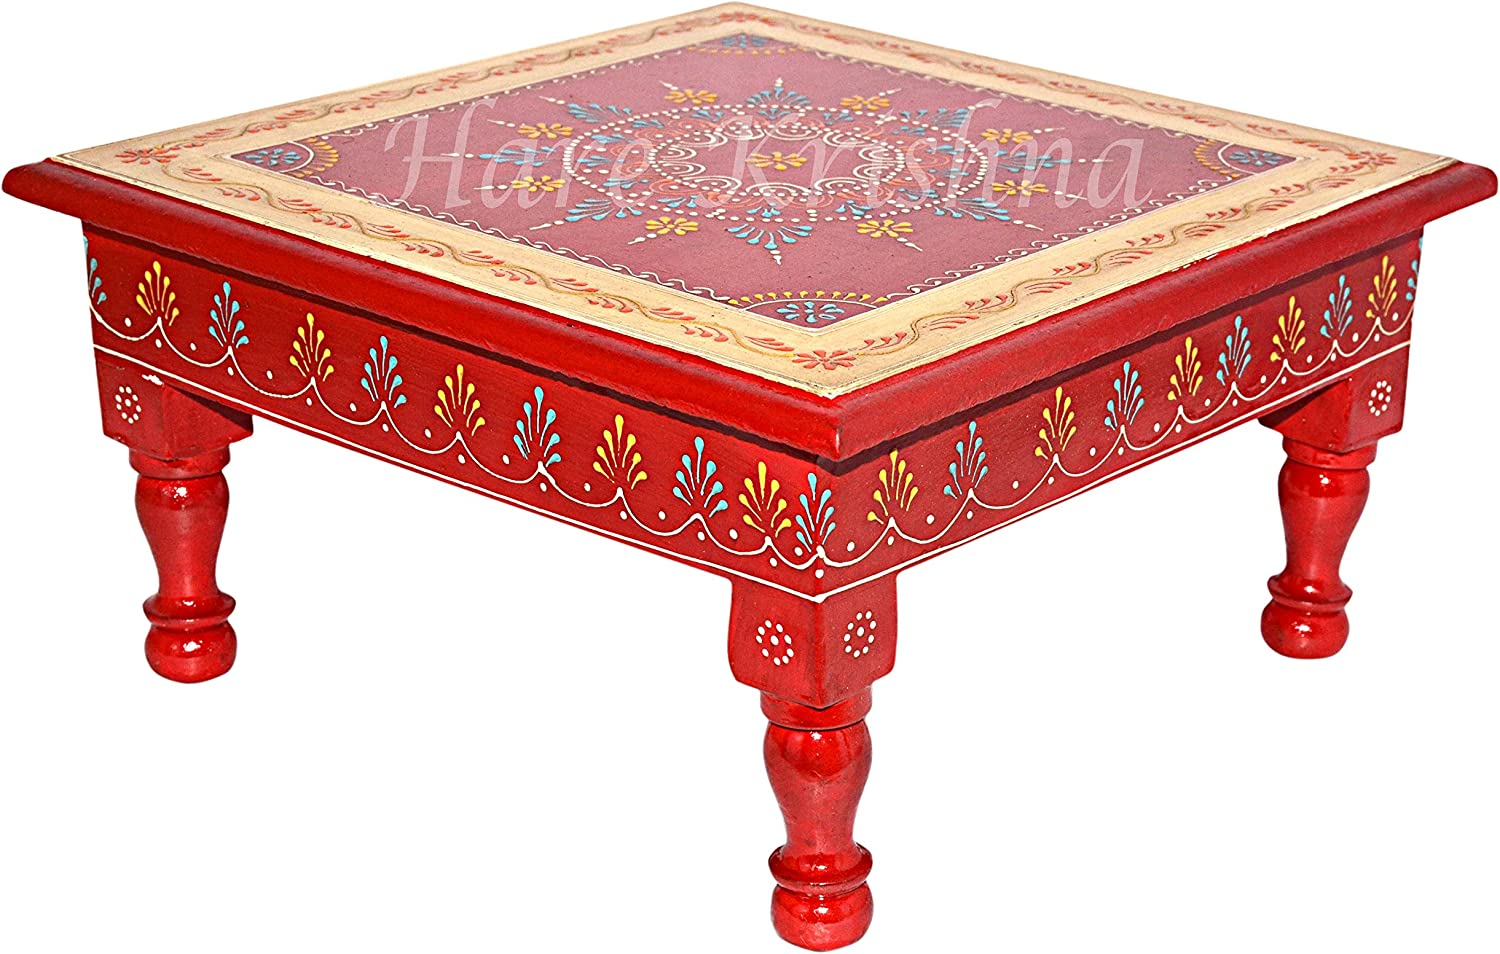 Kitchen Corner Table Wooden Chowki Bajot Hand Painted Coffee Side Low Table (Red) 11 x 11 x 5.5 Inches